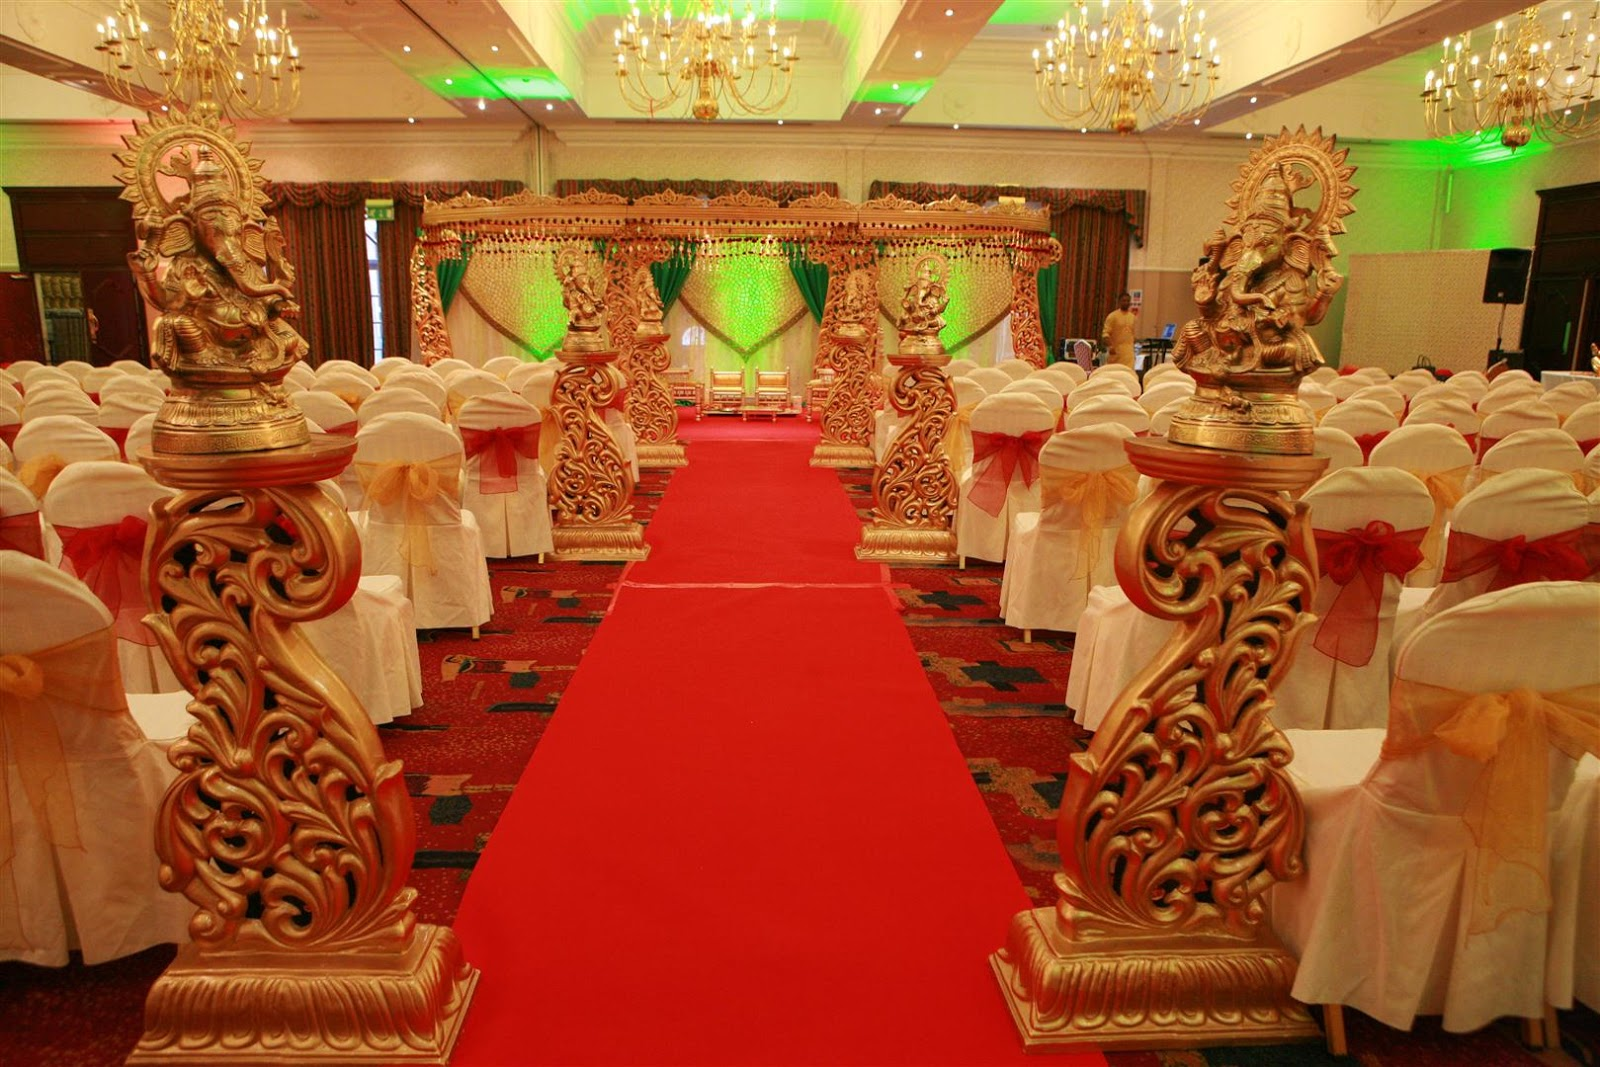 Maz's Blog: Our favourite Asian wedding decorations in ...